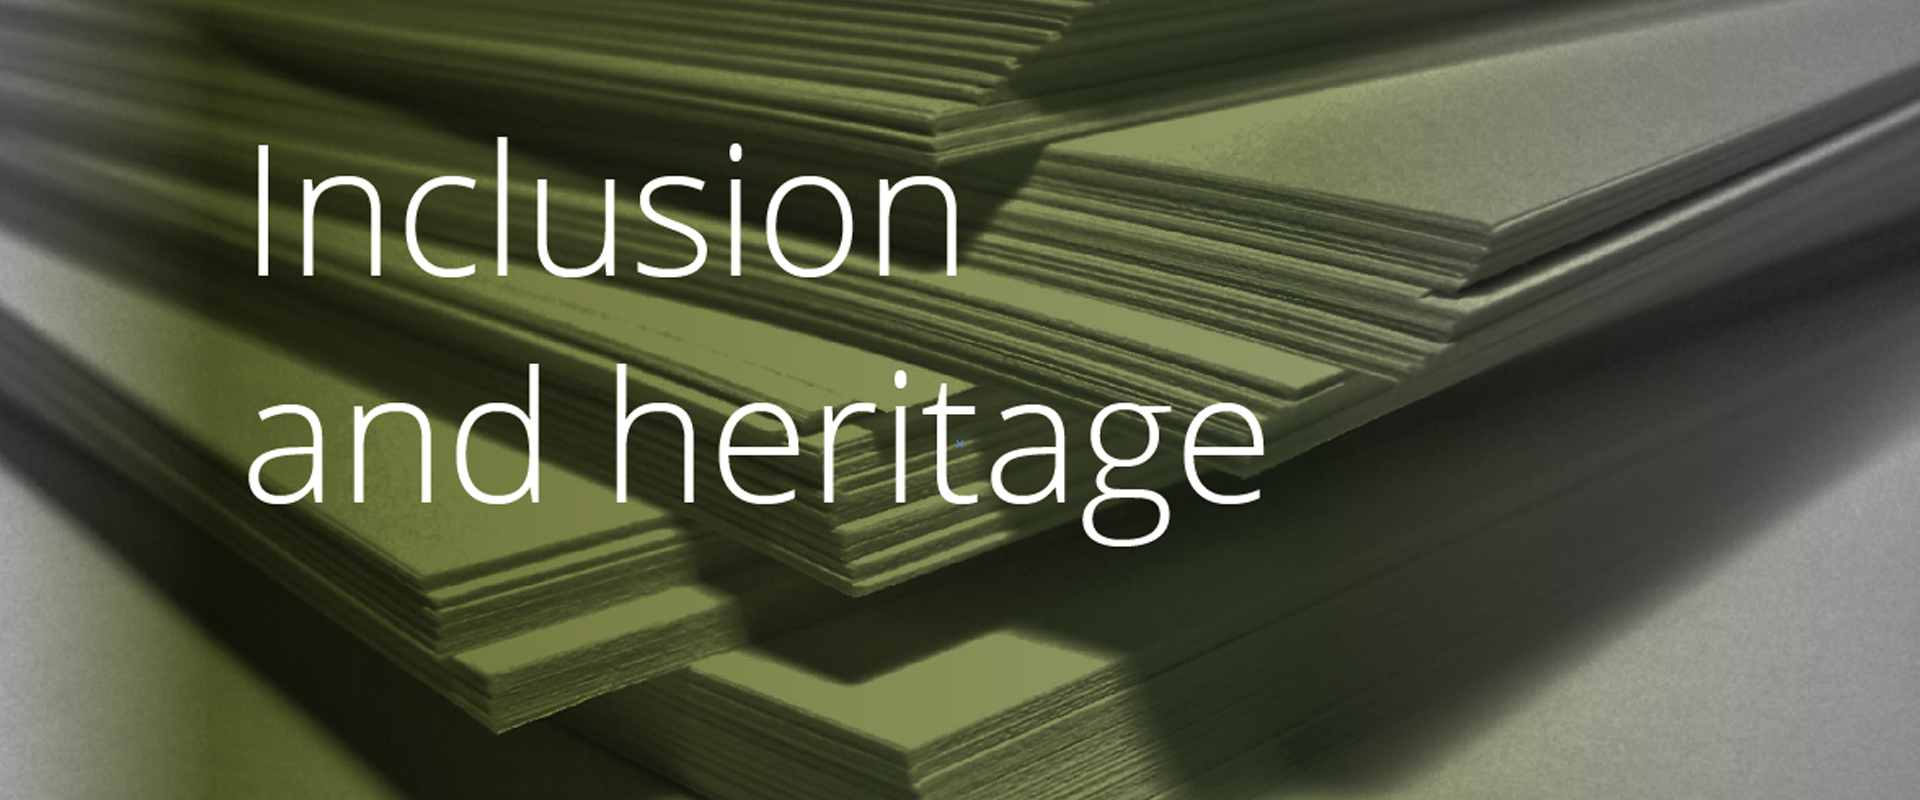 Inclusion and heritage